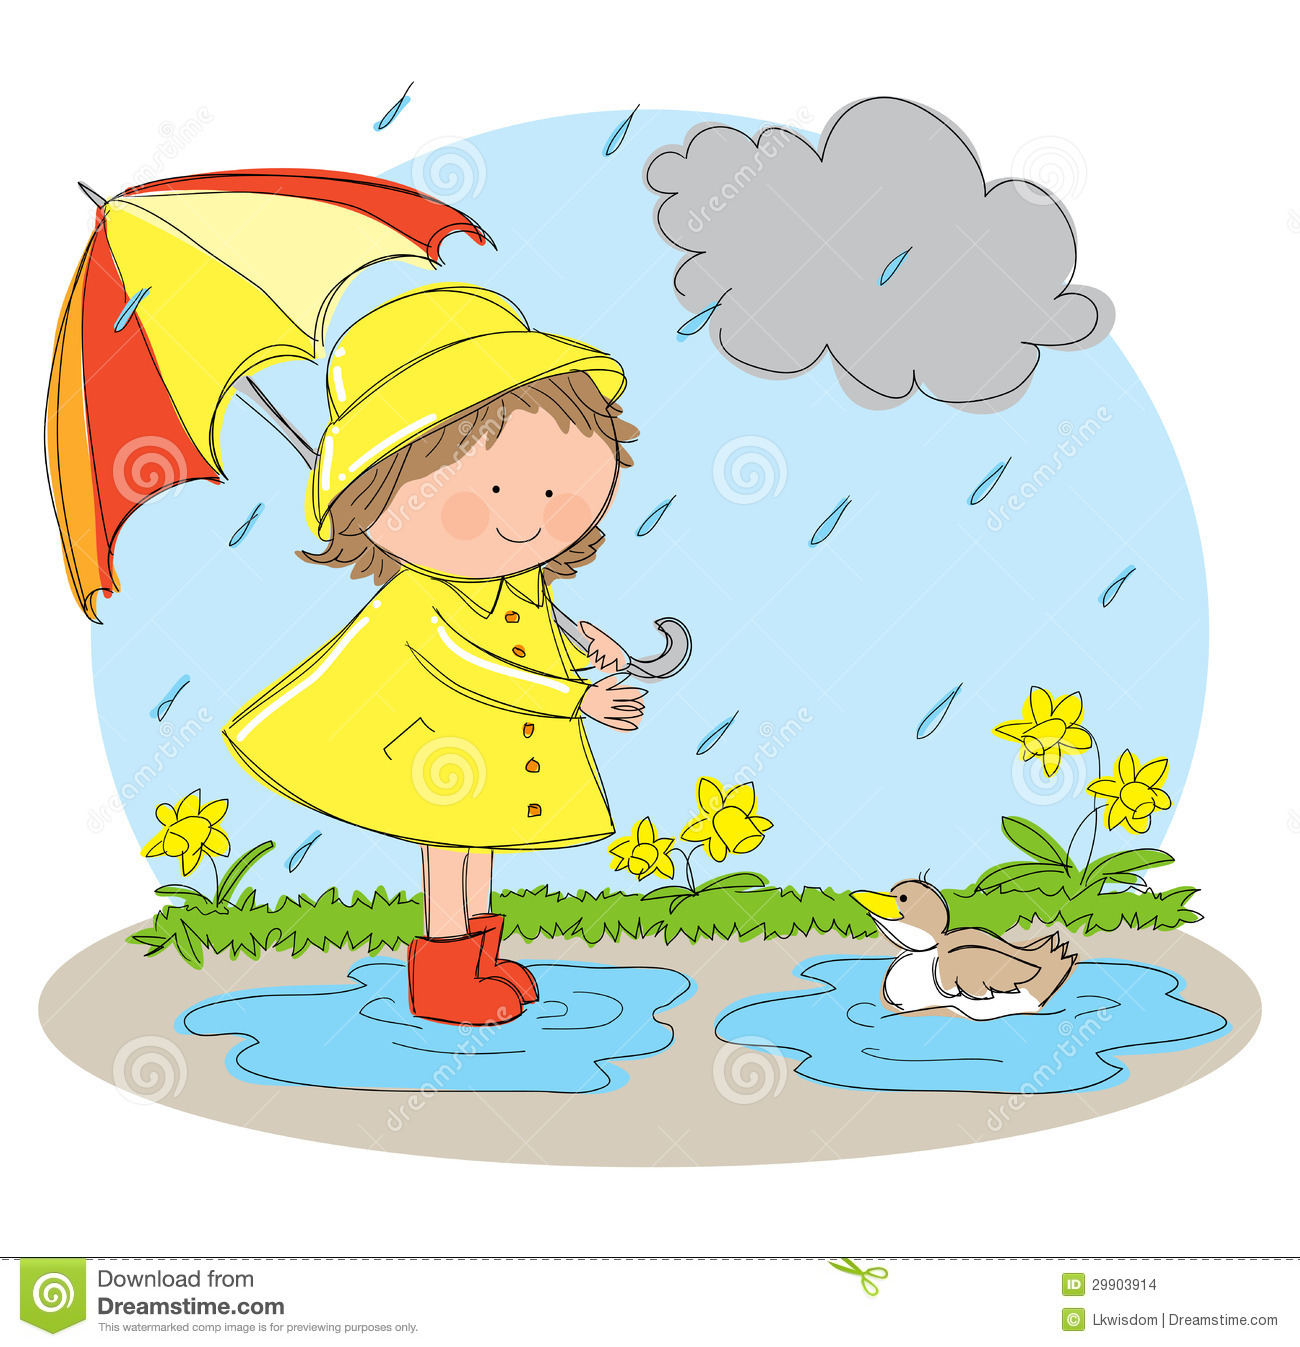 Rainy weather clipart 2 » Clipart Station.